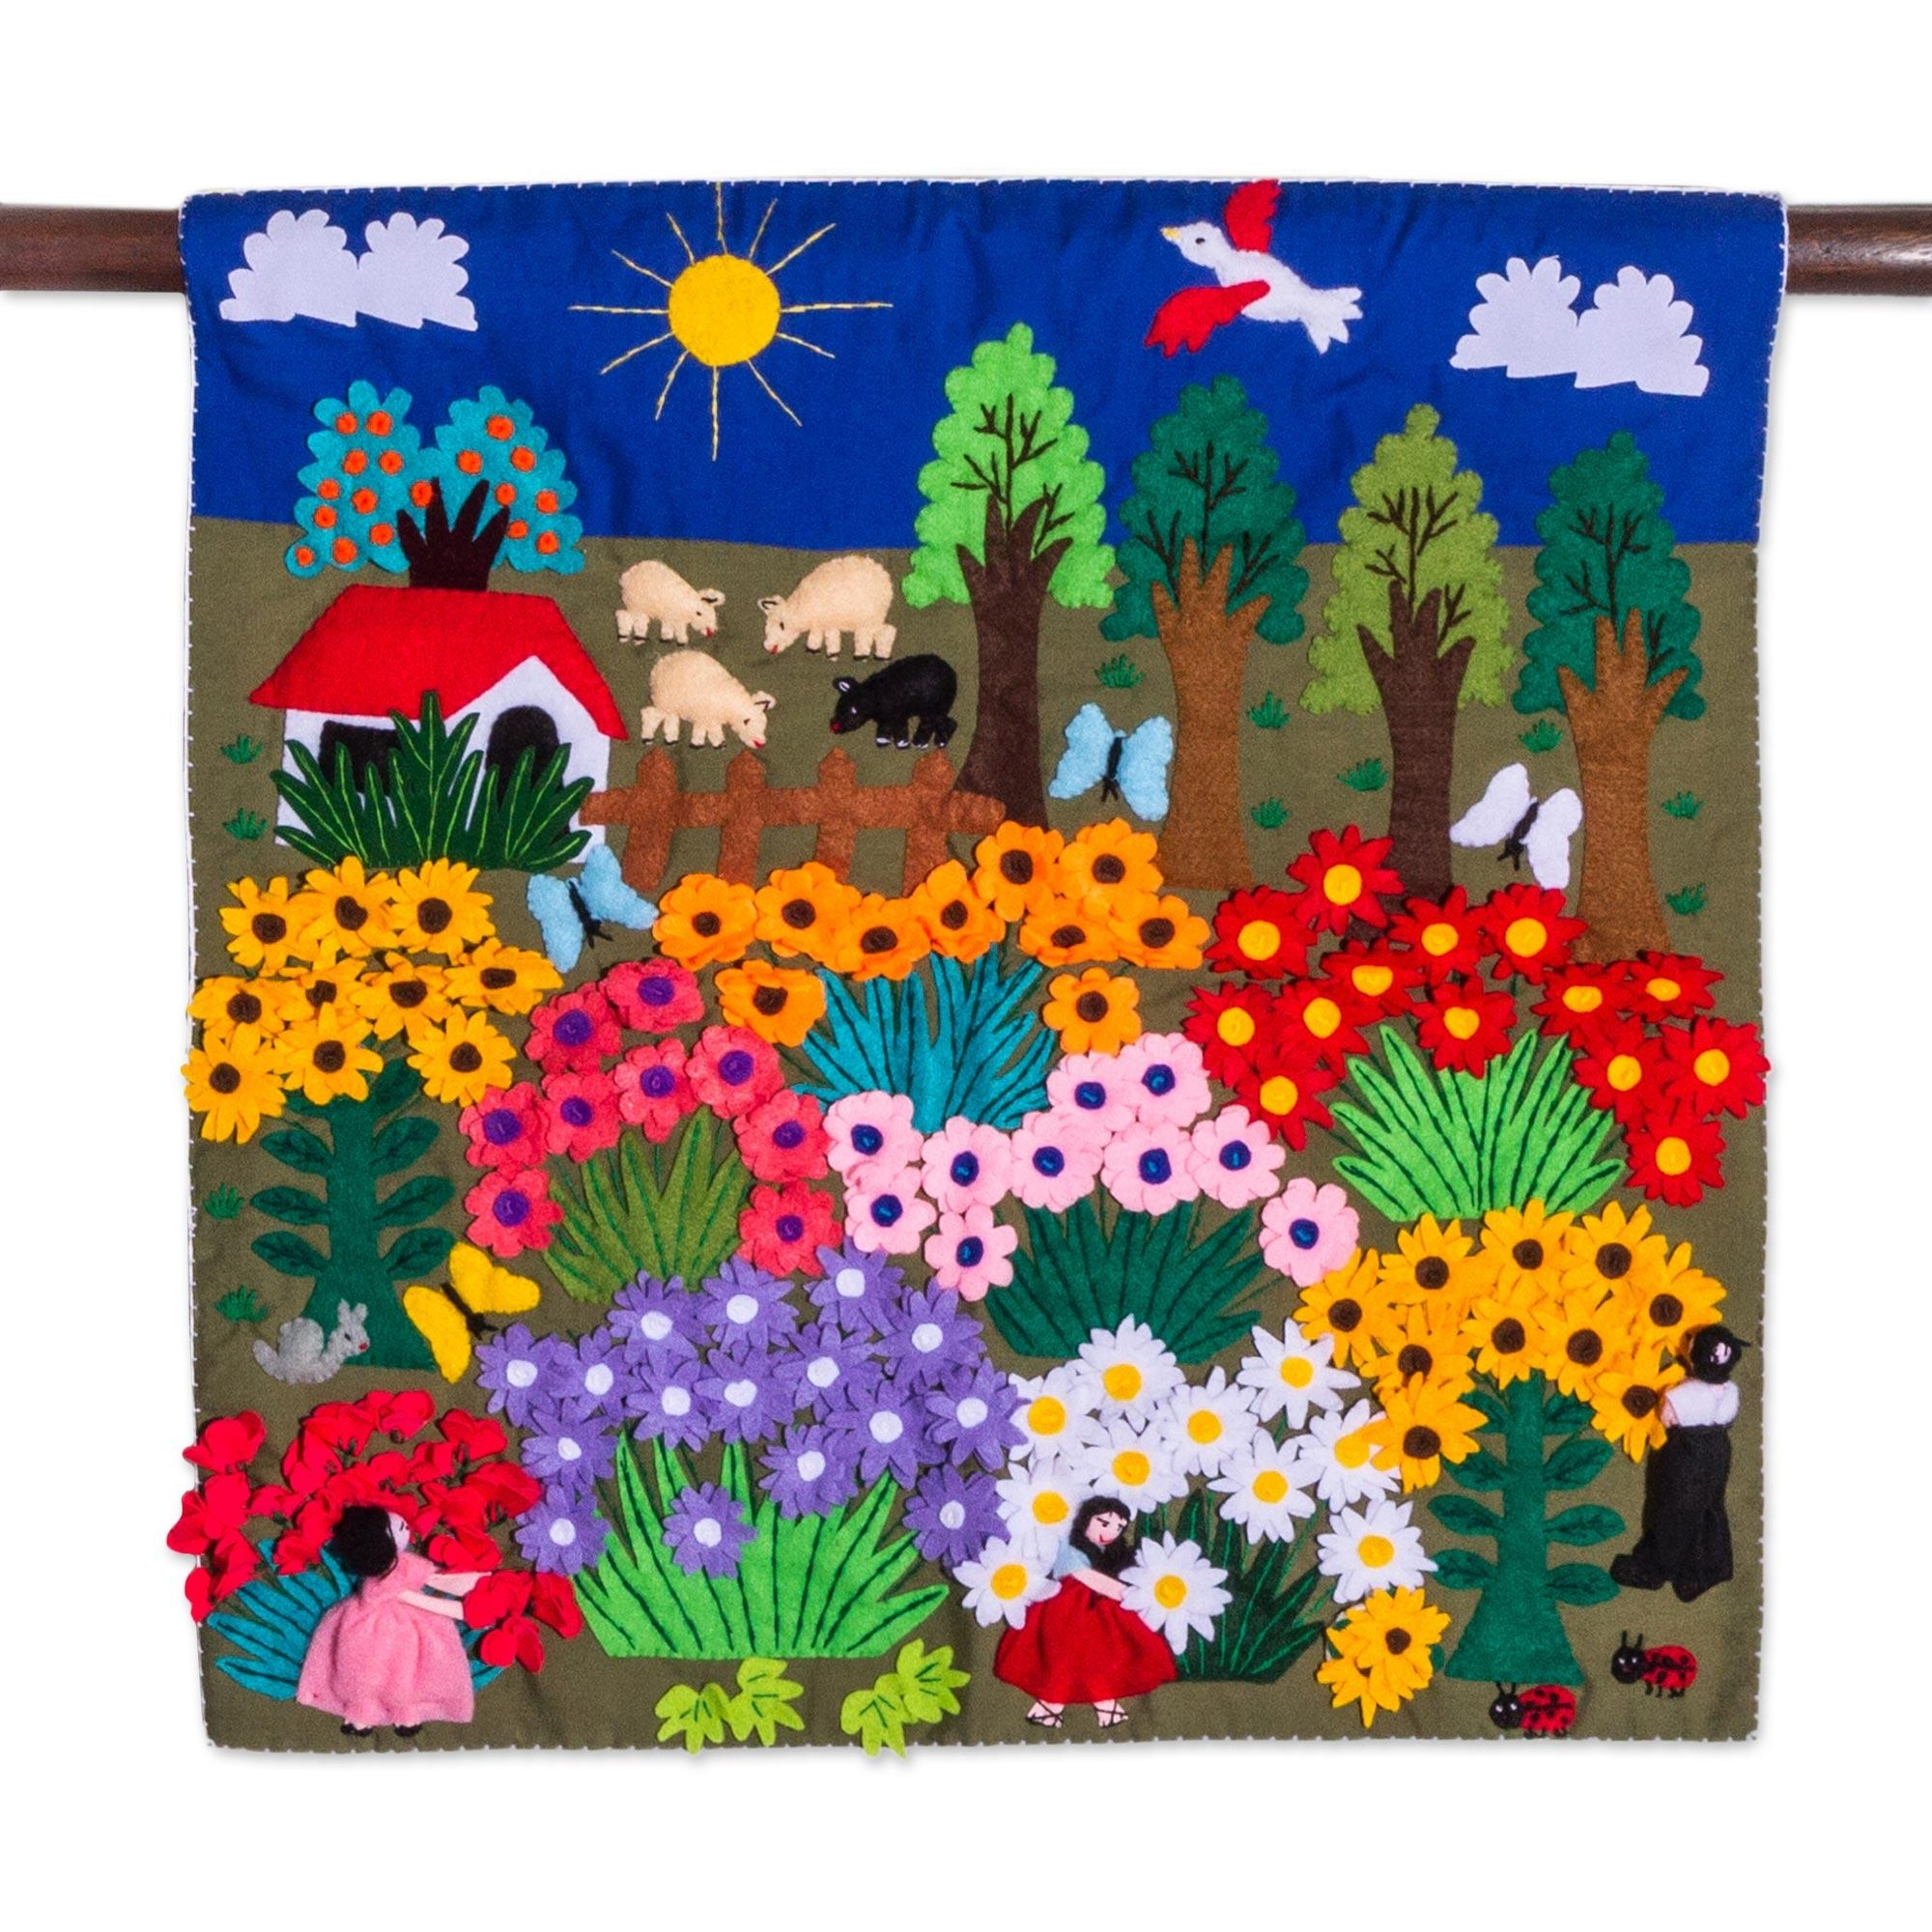 Cheerful Applique Arpilleria Wall Hanging From Peru – Harvesting For Peruvian Wall Art (View 7 of 20)